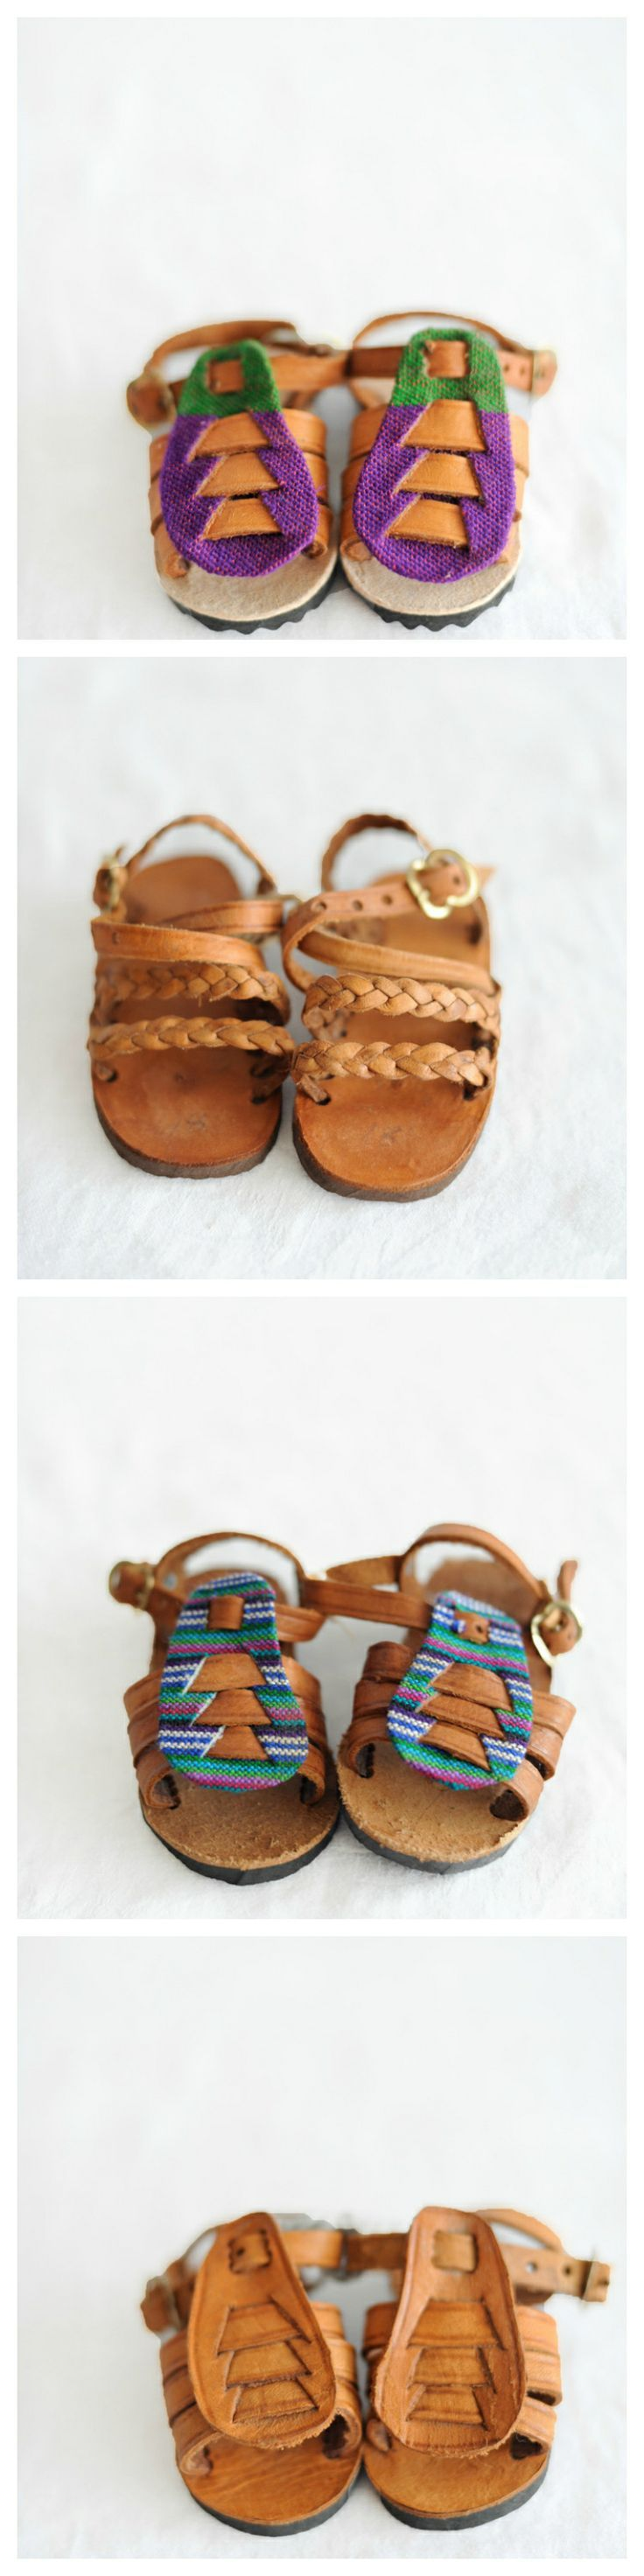 Humble Hilo- The cutest baby sandals